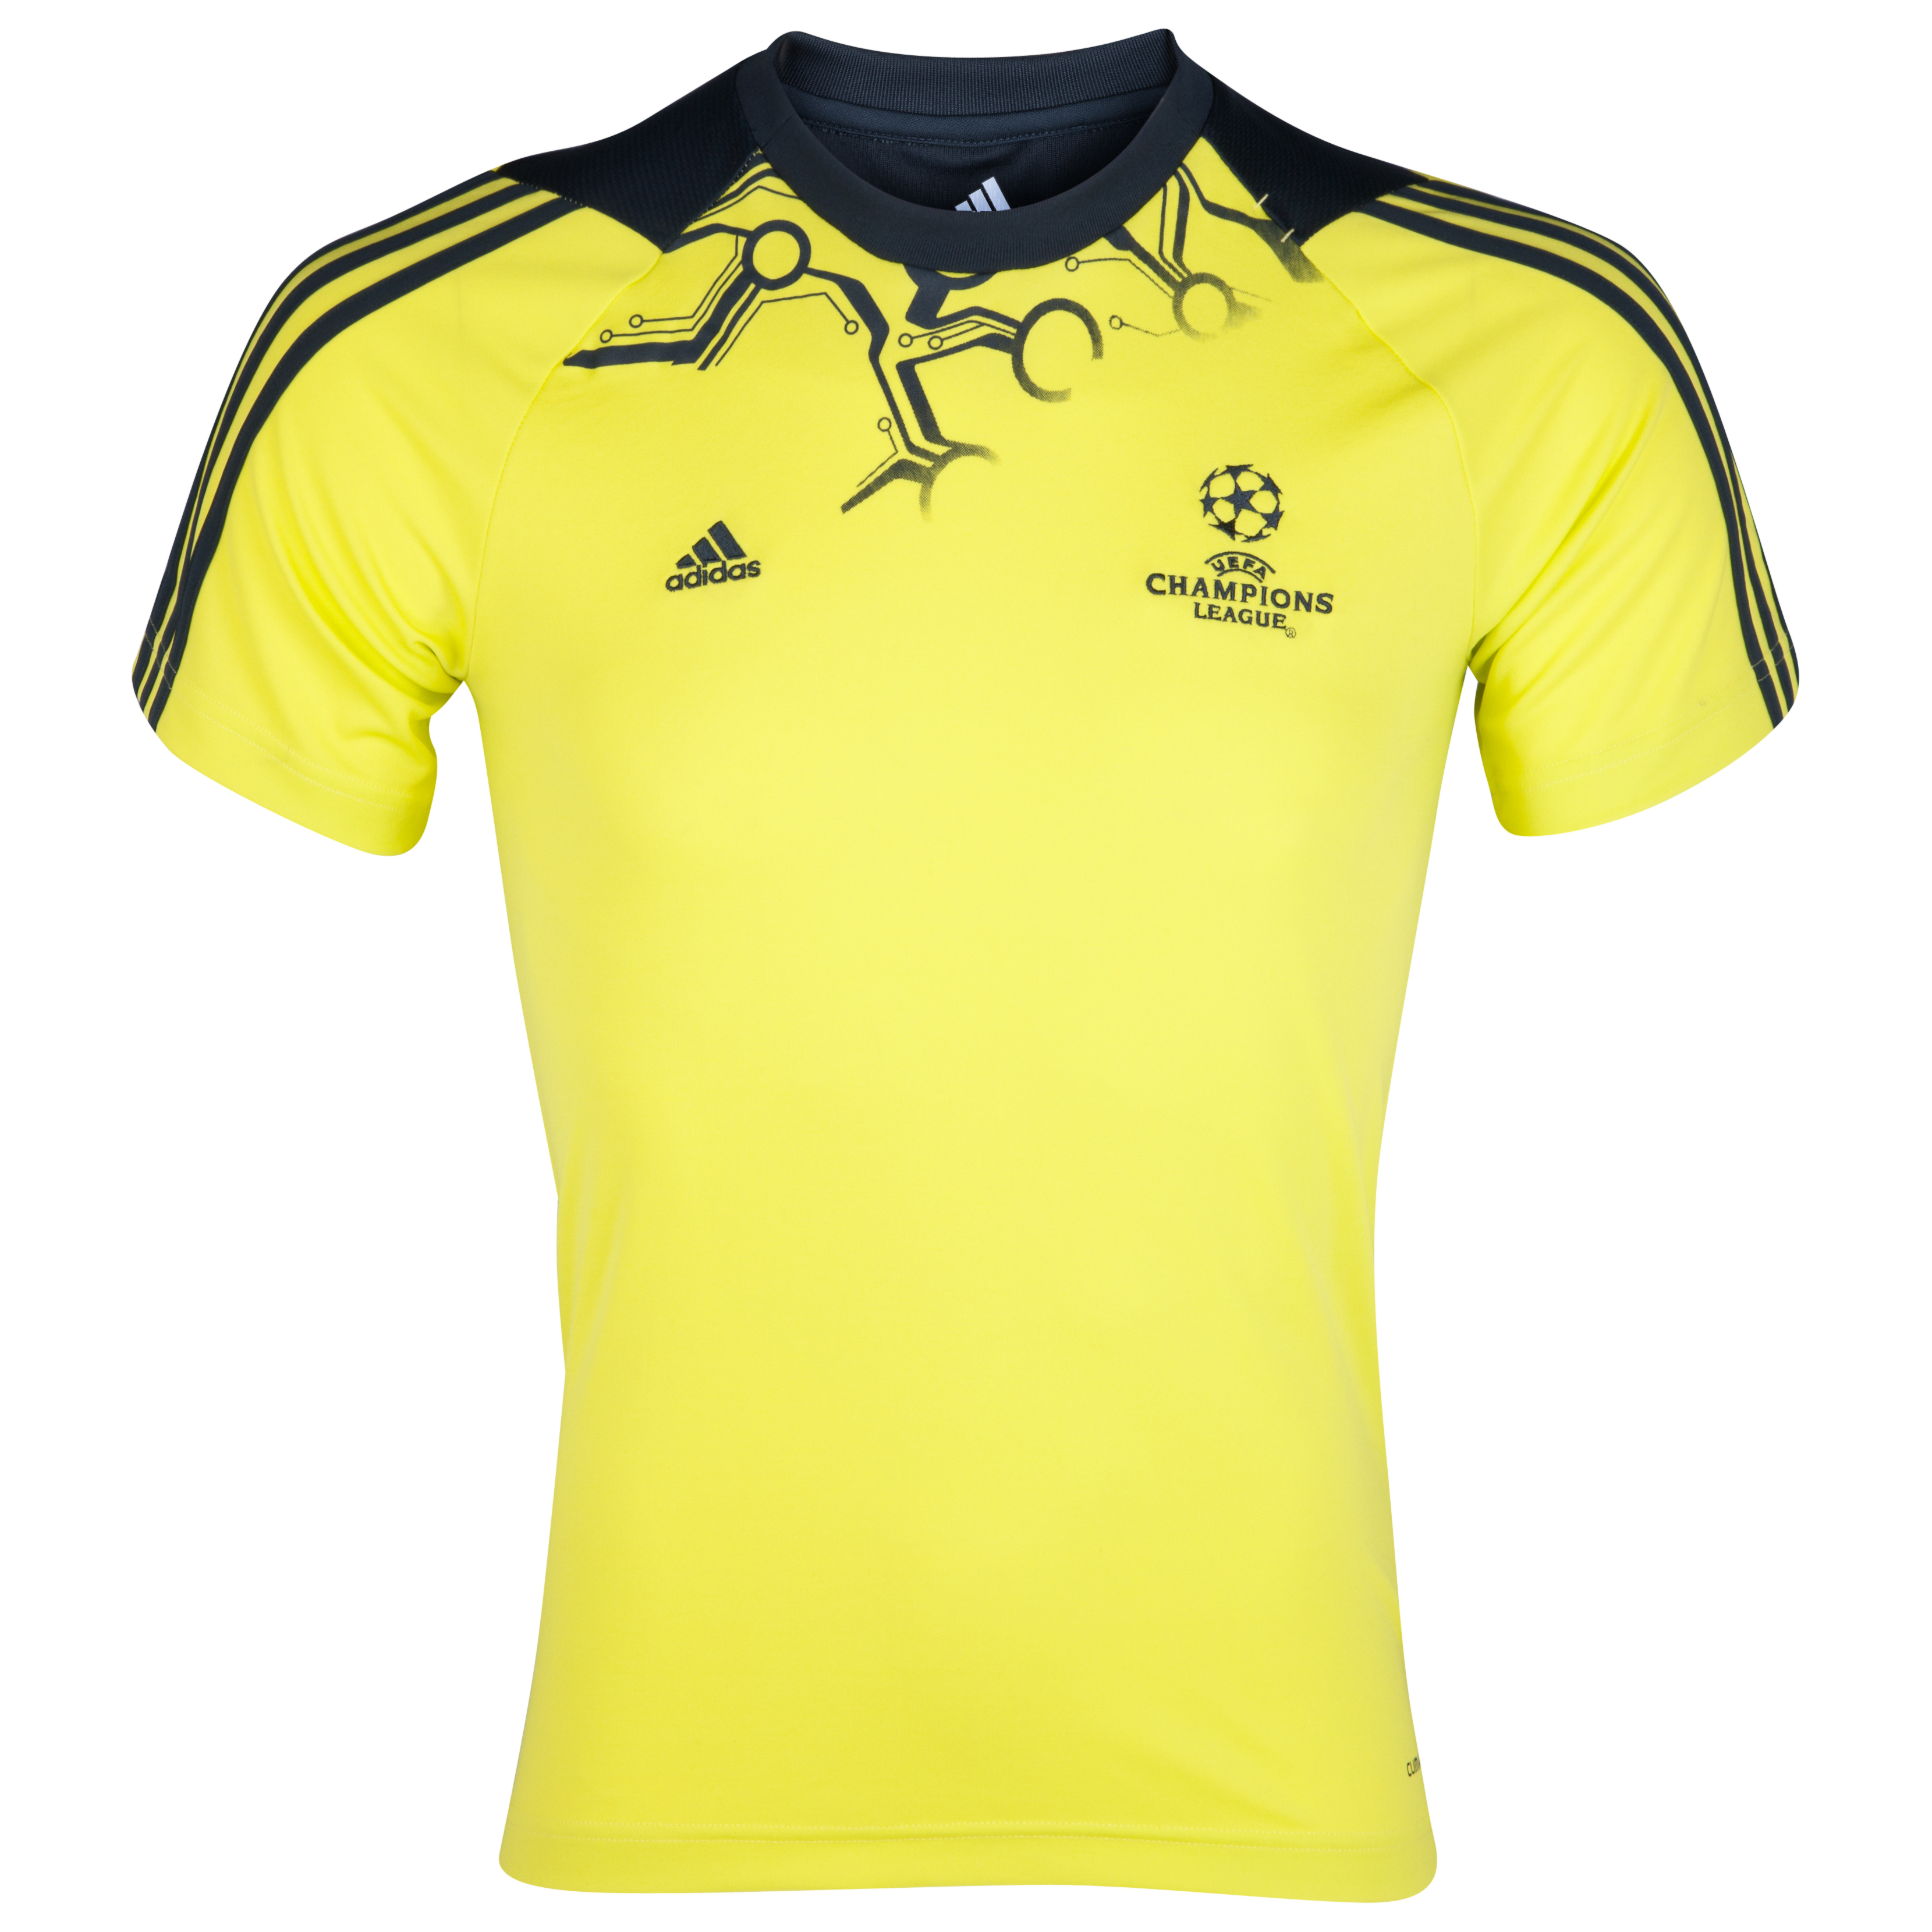 adidas Predator UEFA Champions League Tee - Lab Lime/Tech Onix